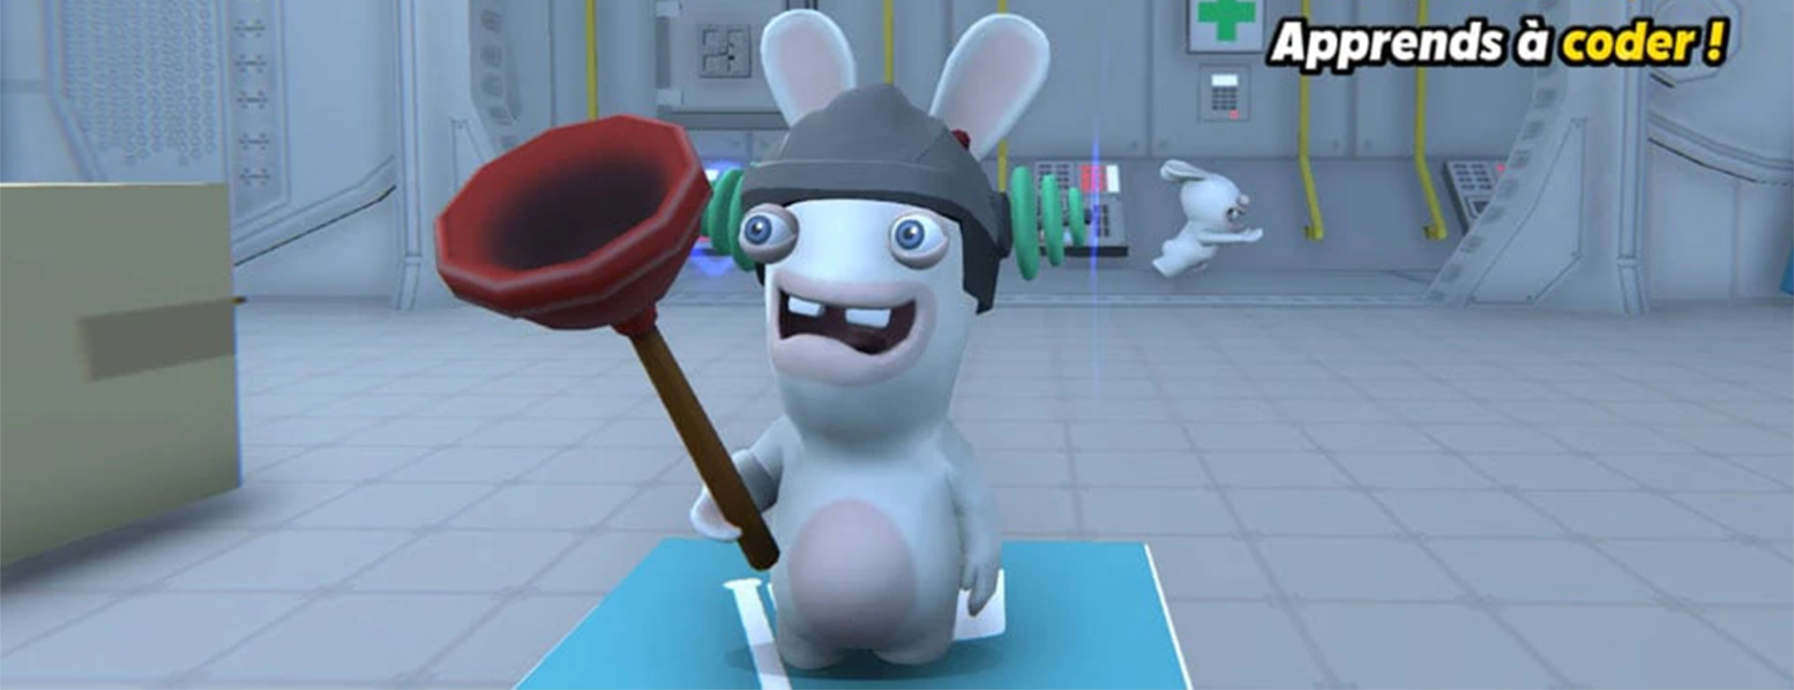 Discover the passion story behind Rabbids Coding